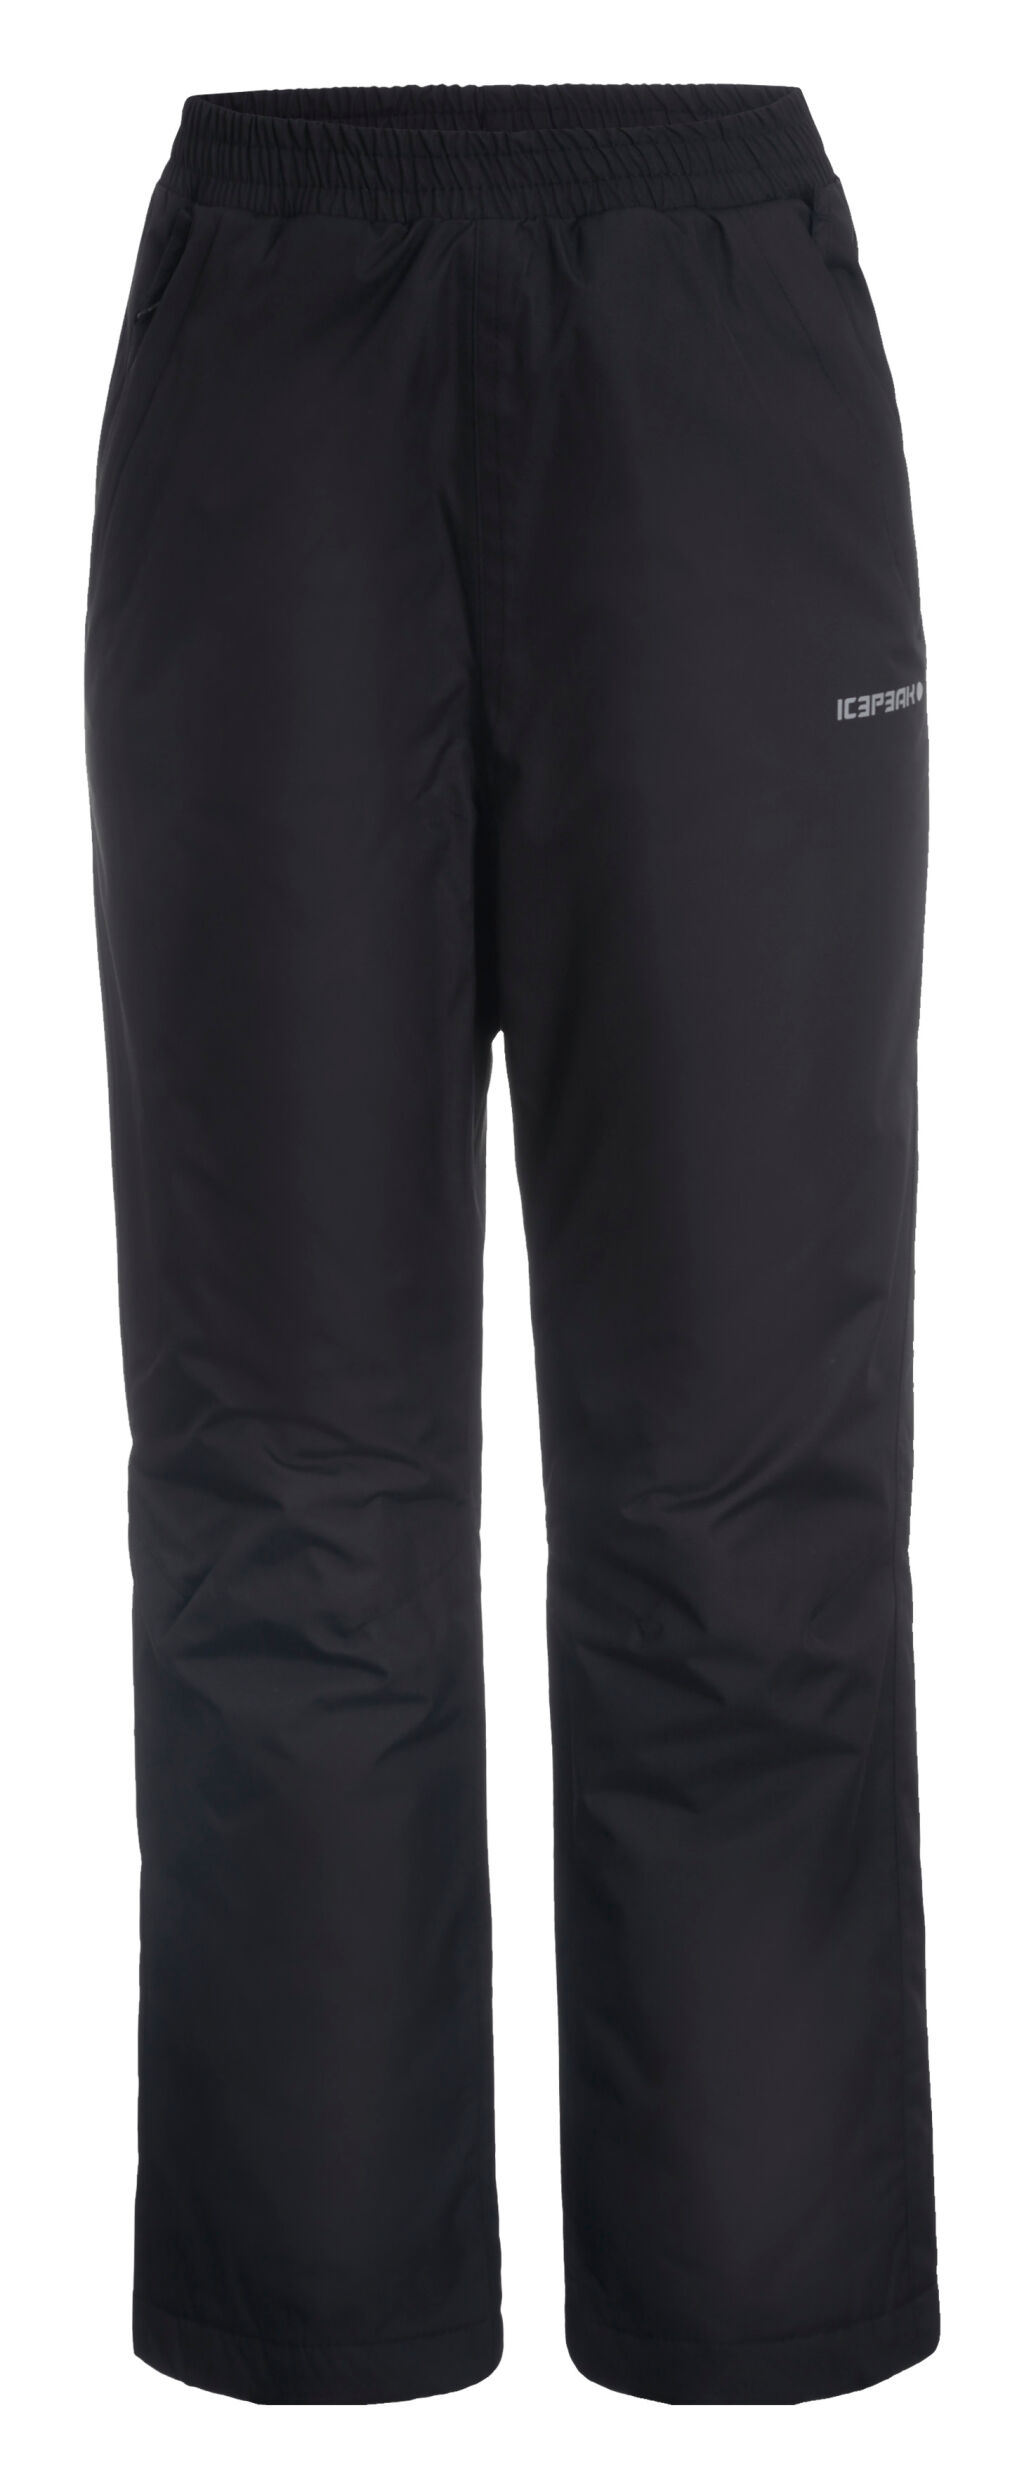 Icepeak Persia Pants Jr